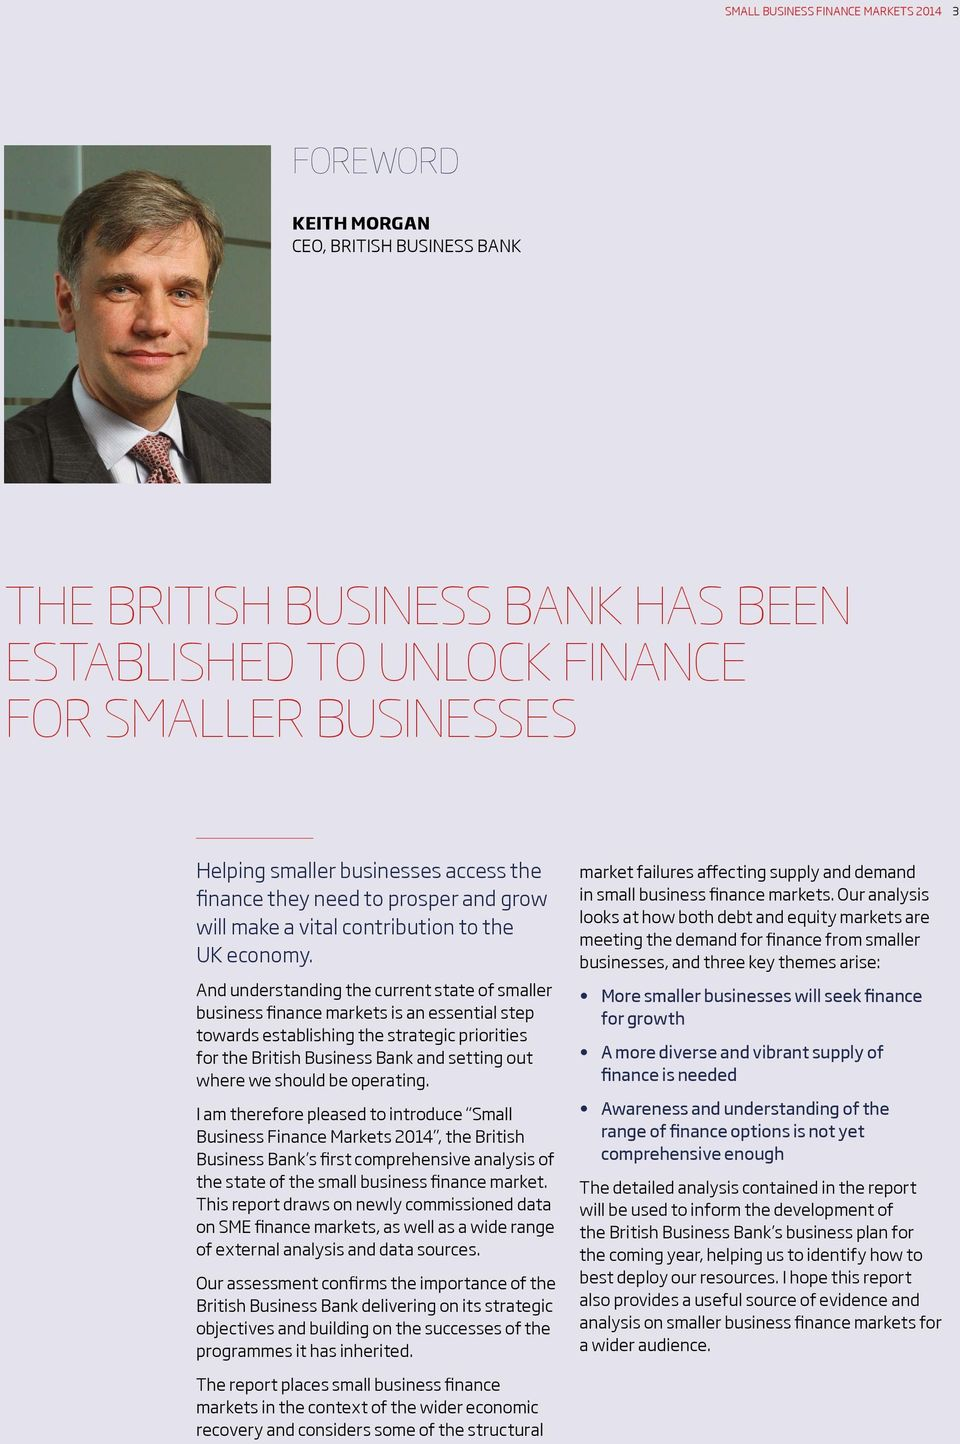 And understanding the current state of smaller business finance markets is an essential step towards establishing the strategic priorities for the British Business Bank and setting out where we